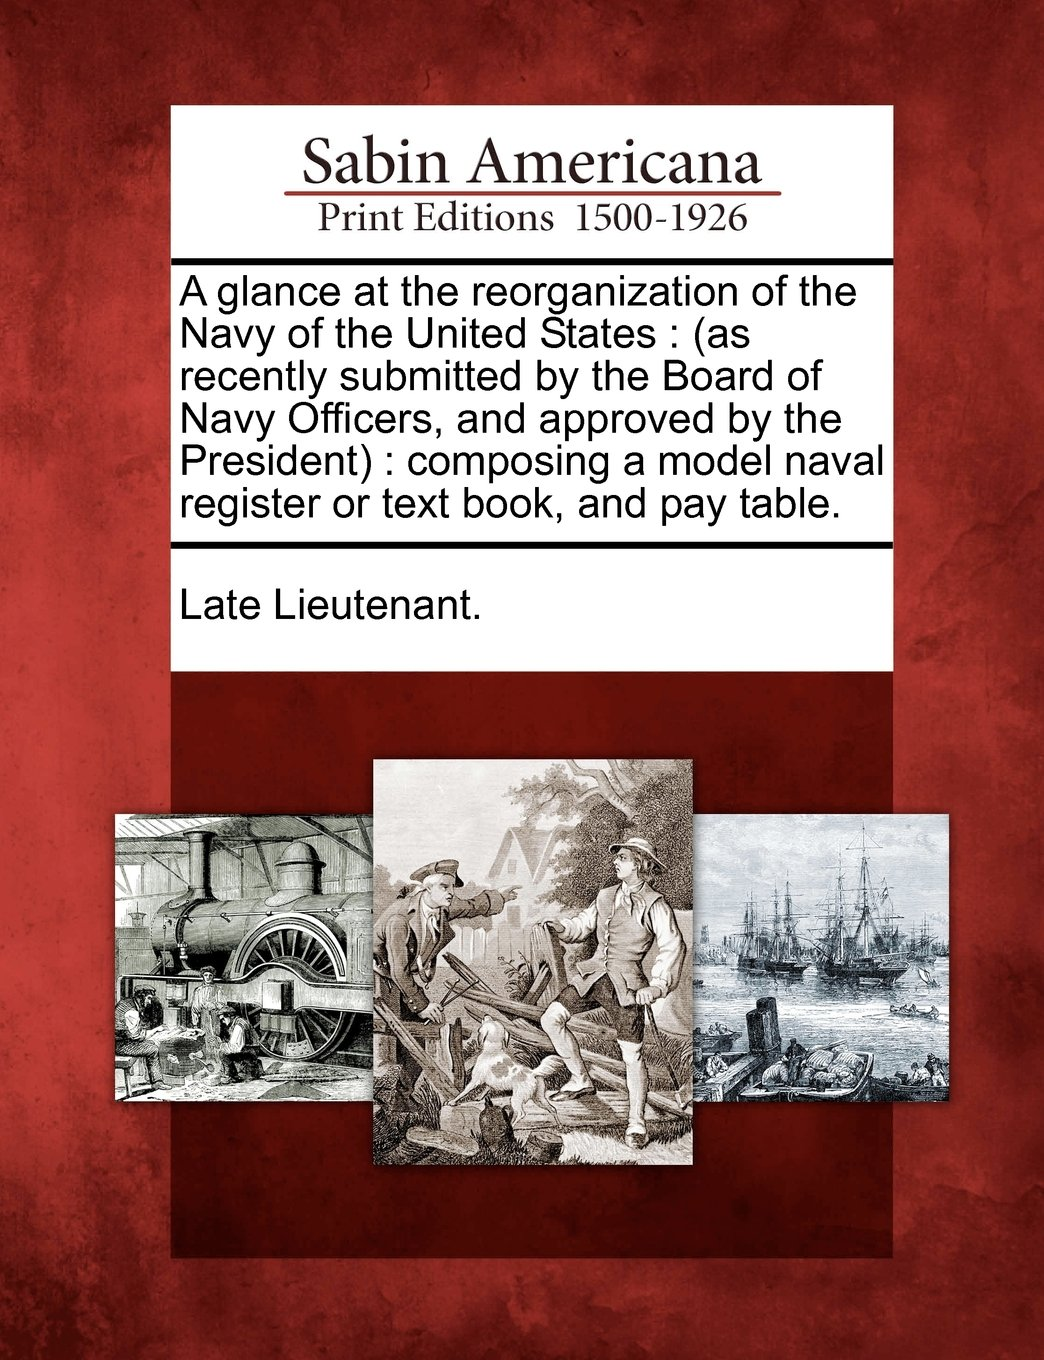 Read Online A glance at the reorganization of the Navy of the United States: (as recently submitted by the Board of Navy Officers, and approved by the President) ... naval register or text book, and pay table. pdf